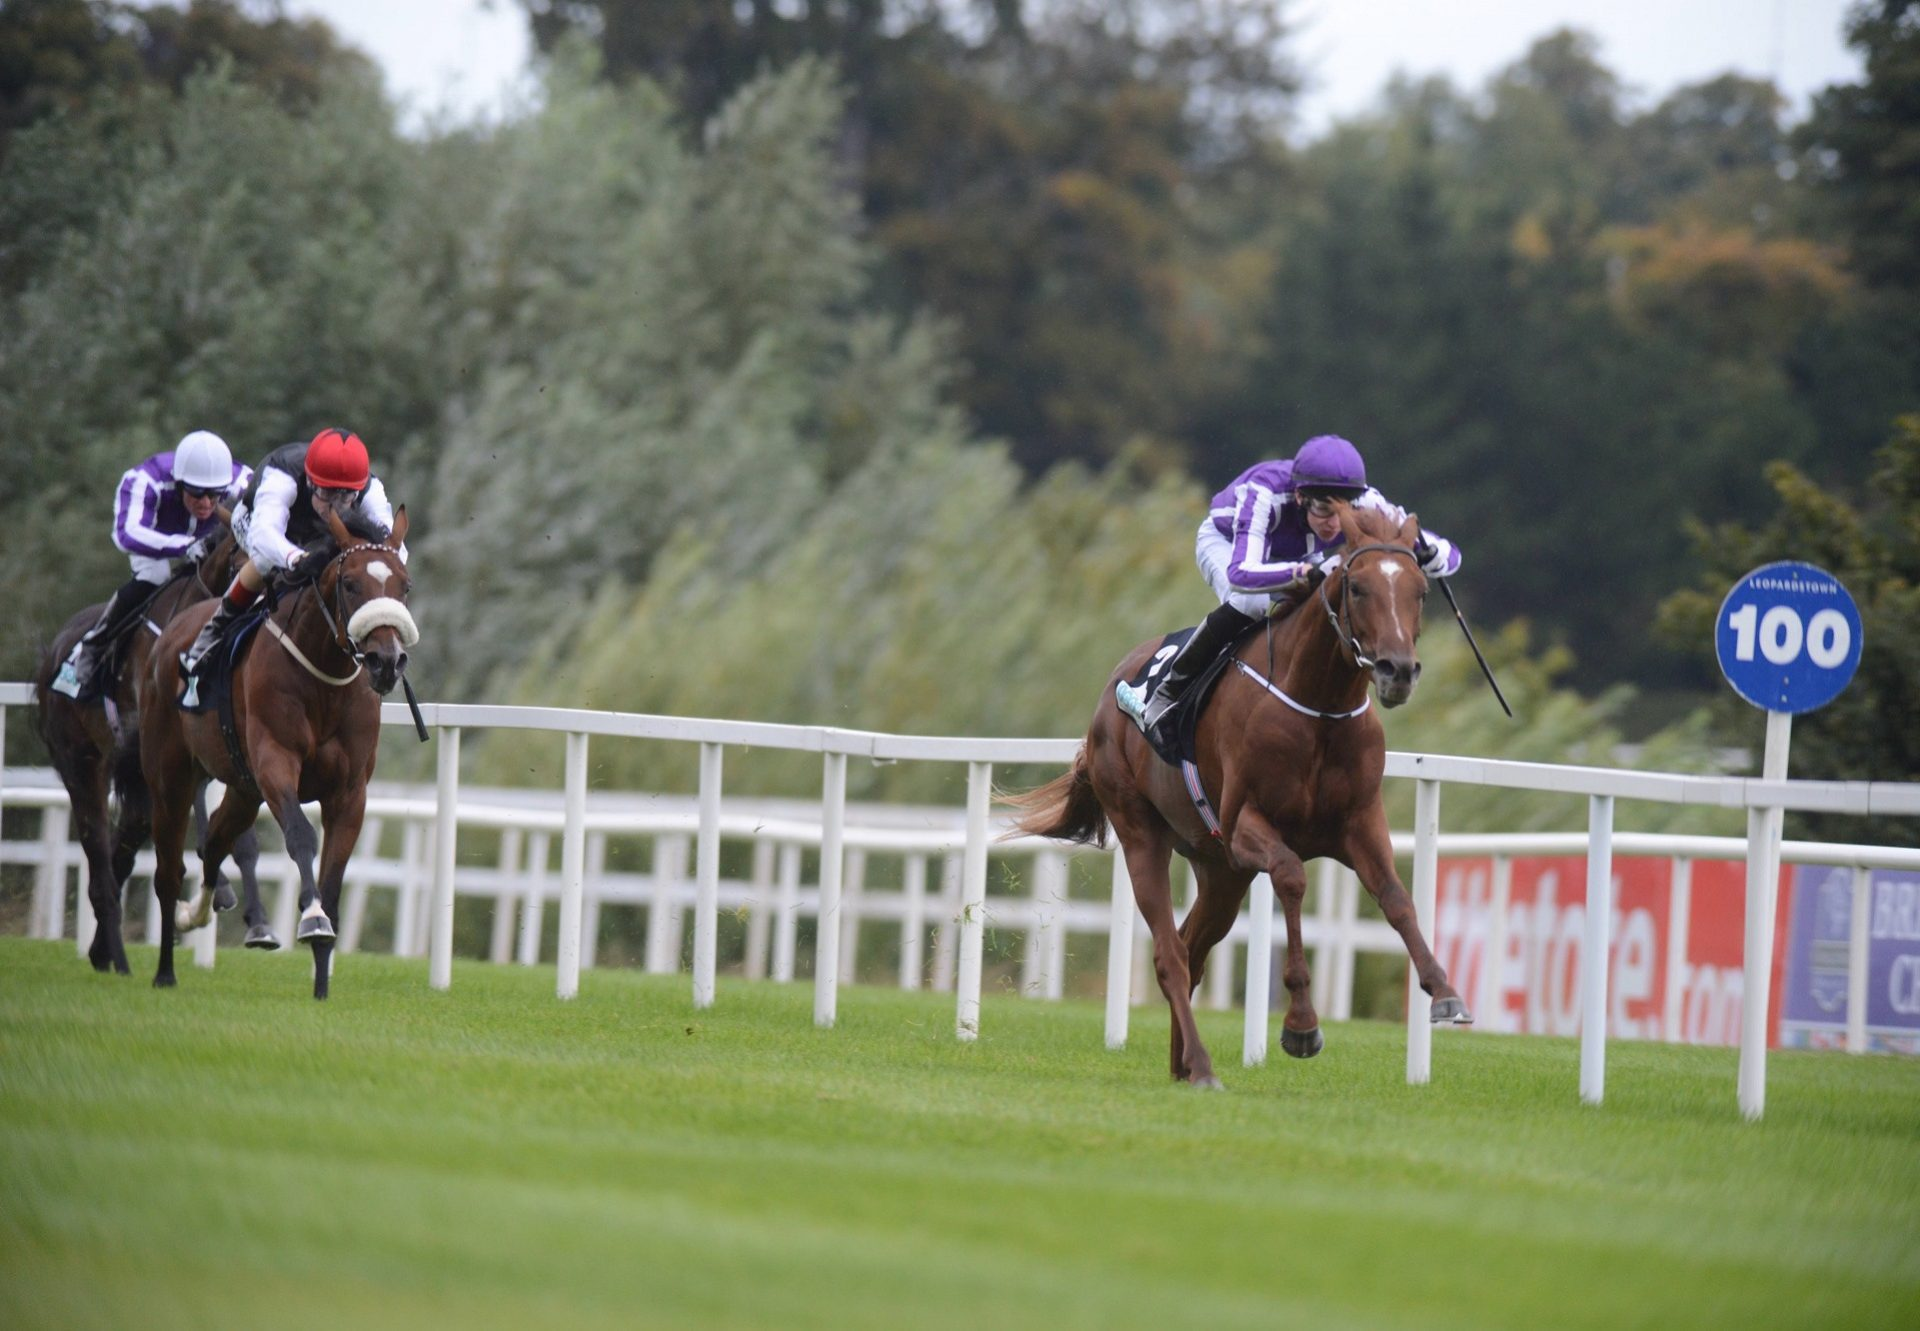 Australia Winning The G3 Breeders Cup Juvenile Trial At Leoaprdstown